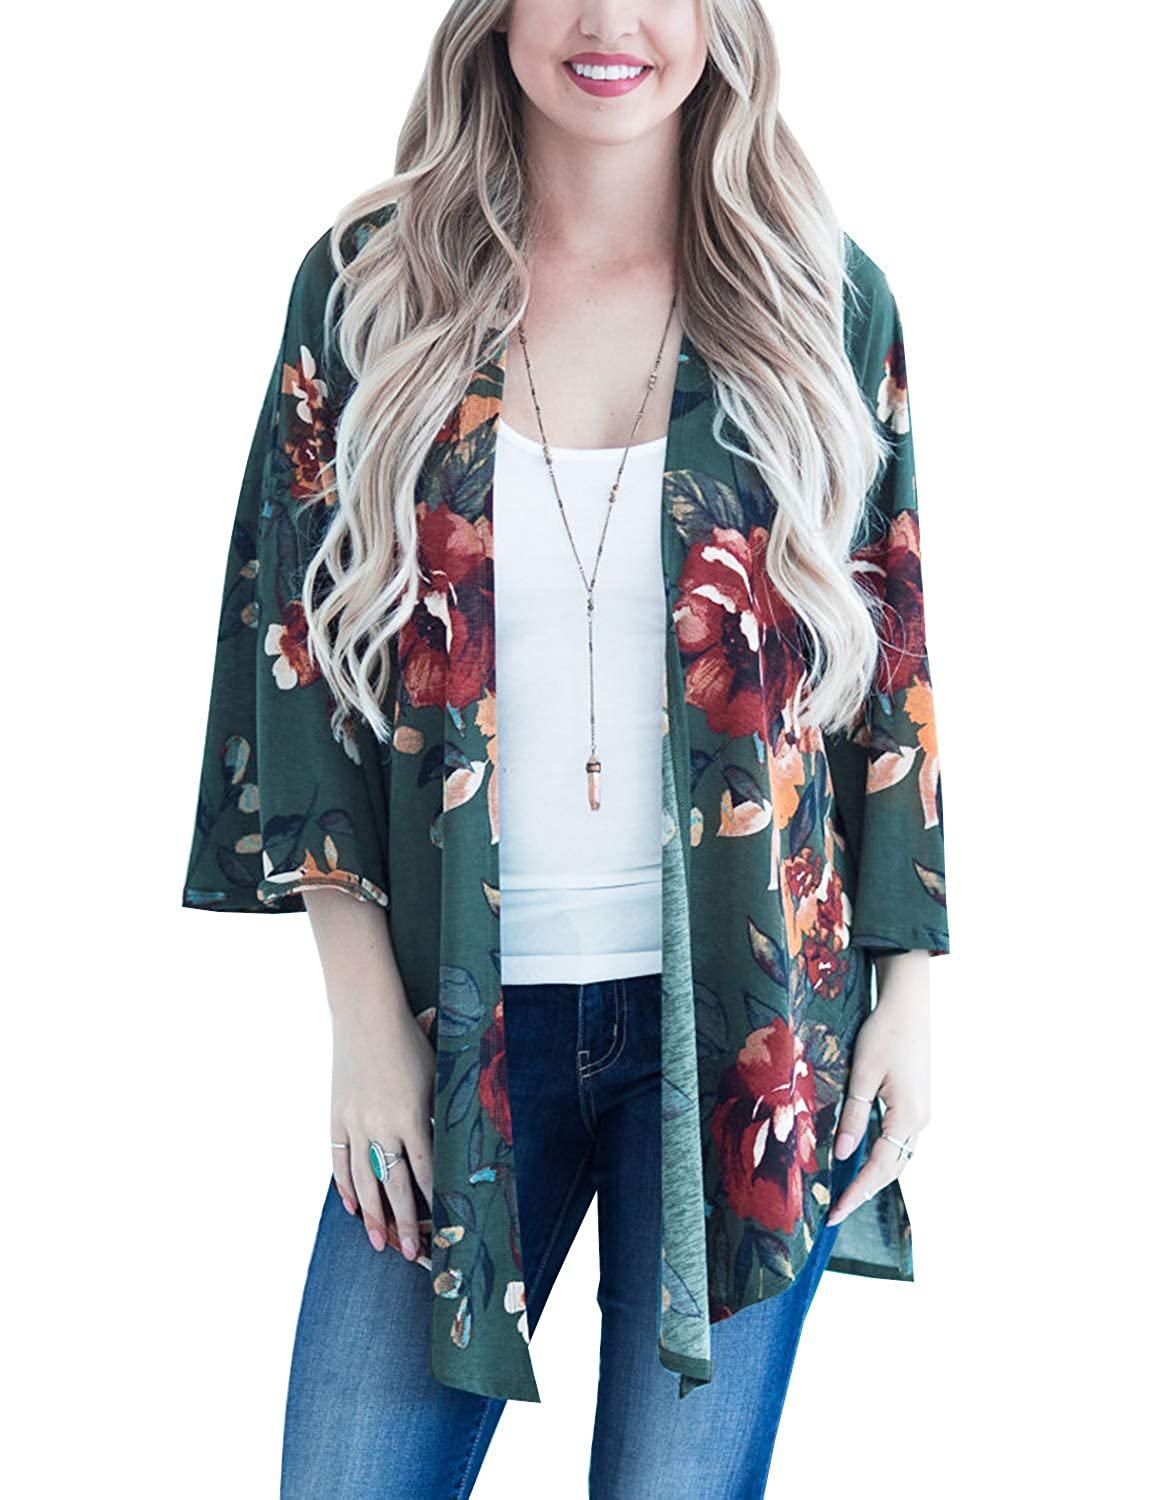 Deep green Women's Floral Kimono Cardigan Casual Loose Boho Beach Cover up Wraps Blouses Top